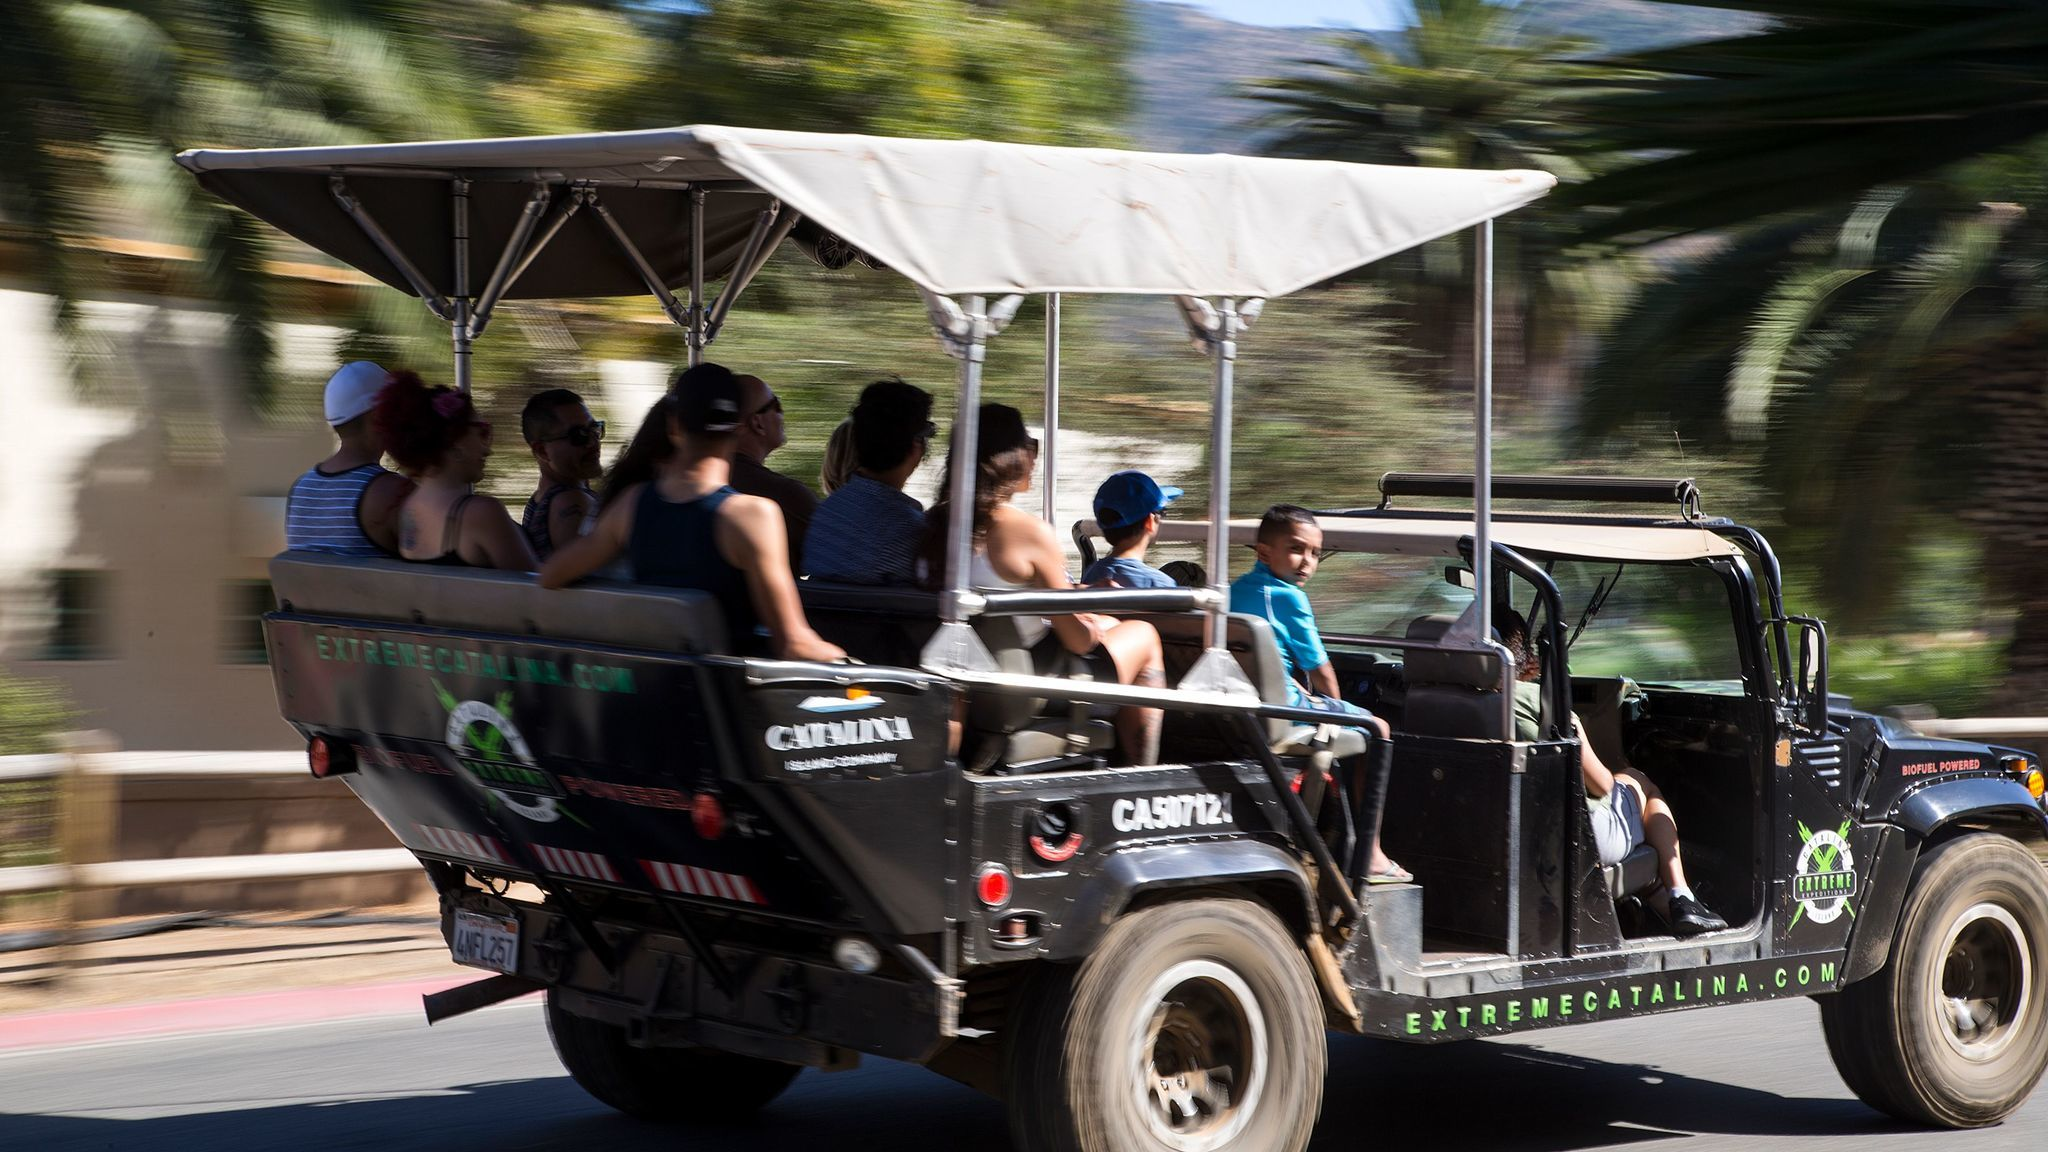 Customers are packed into a biofuel Hummer for a tour of the backcountry and sweeping views of Santa Catalina Island.